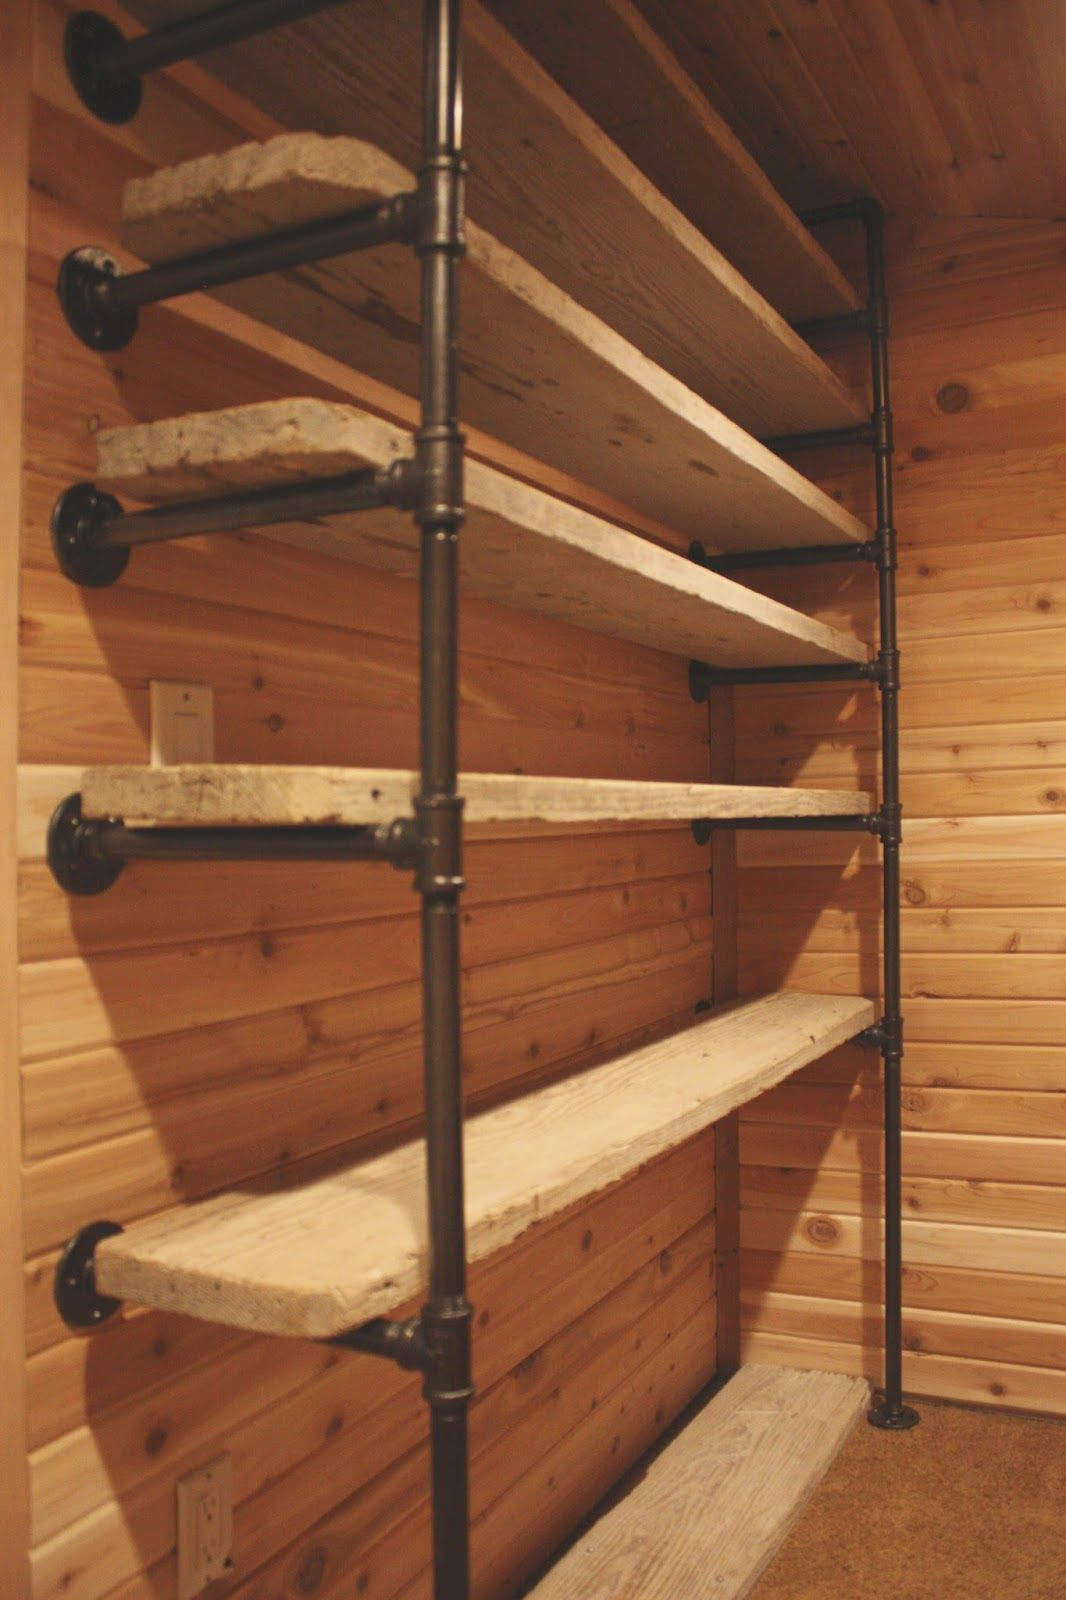 Pvc Pipe Bookshelf My Sweet Savannah Industrial Pipe Closet System Rethink